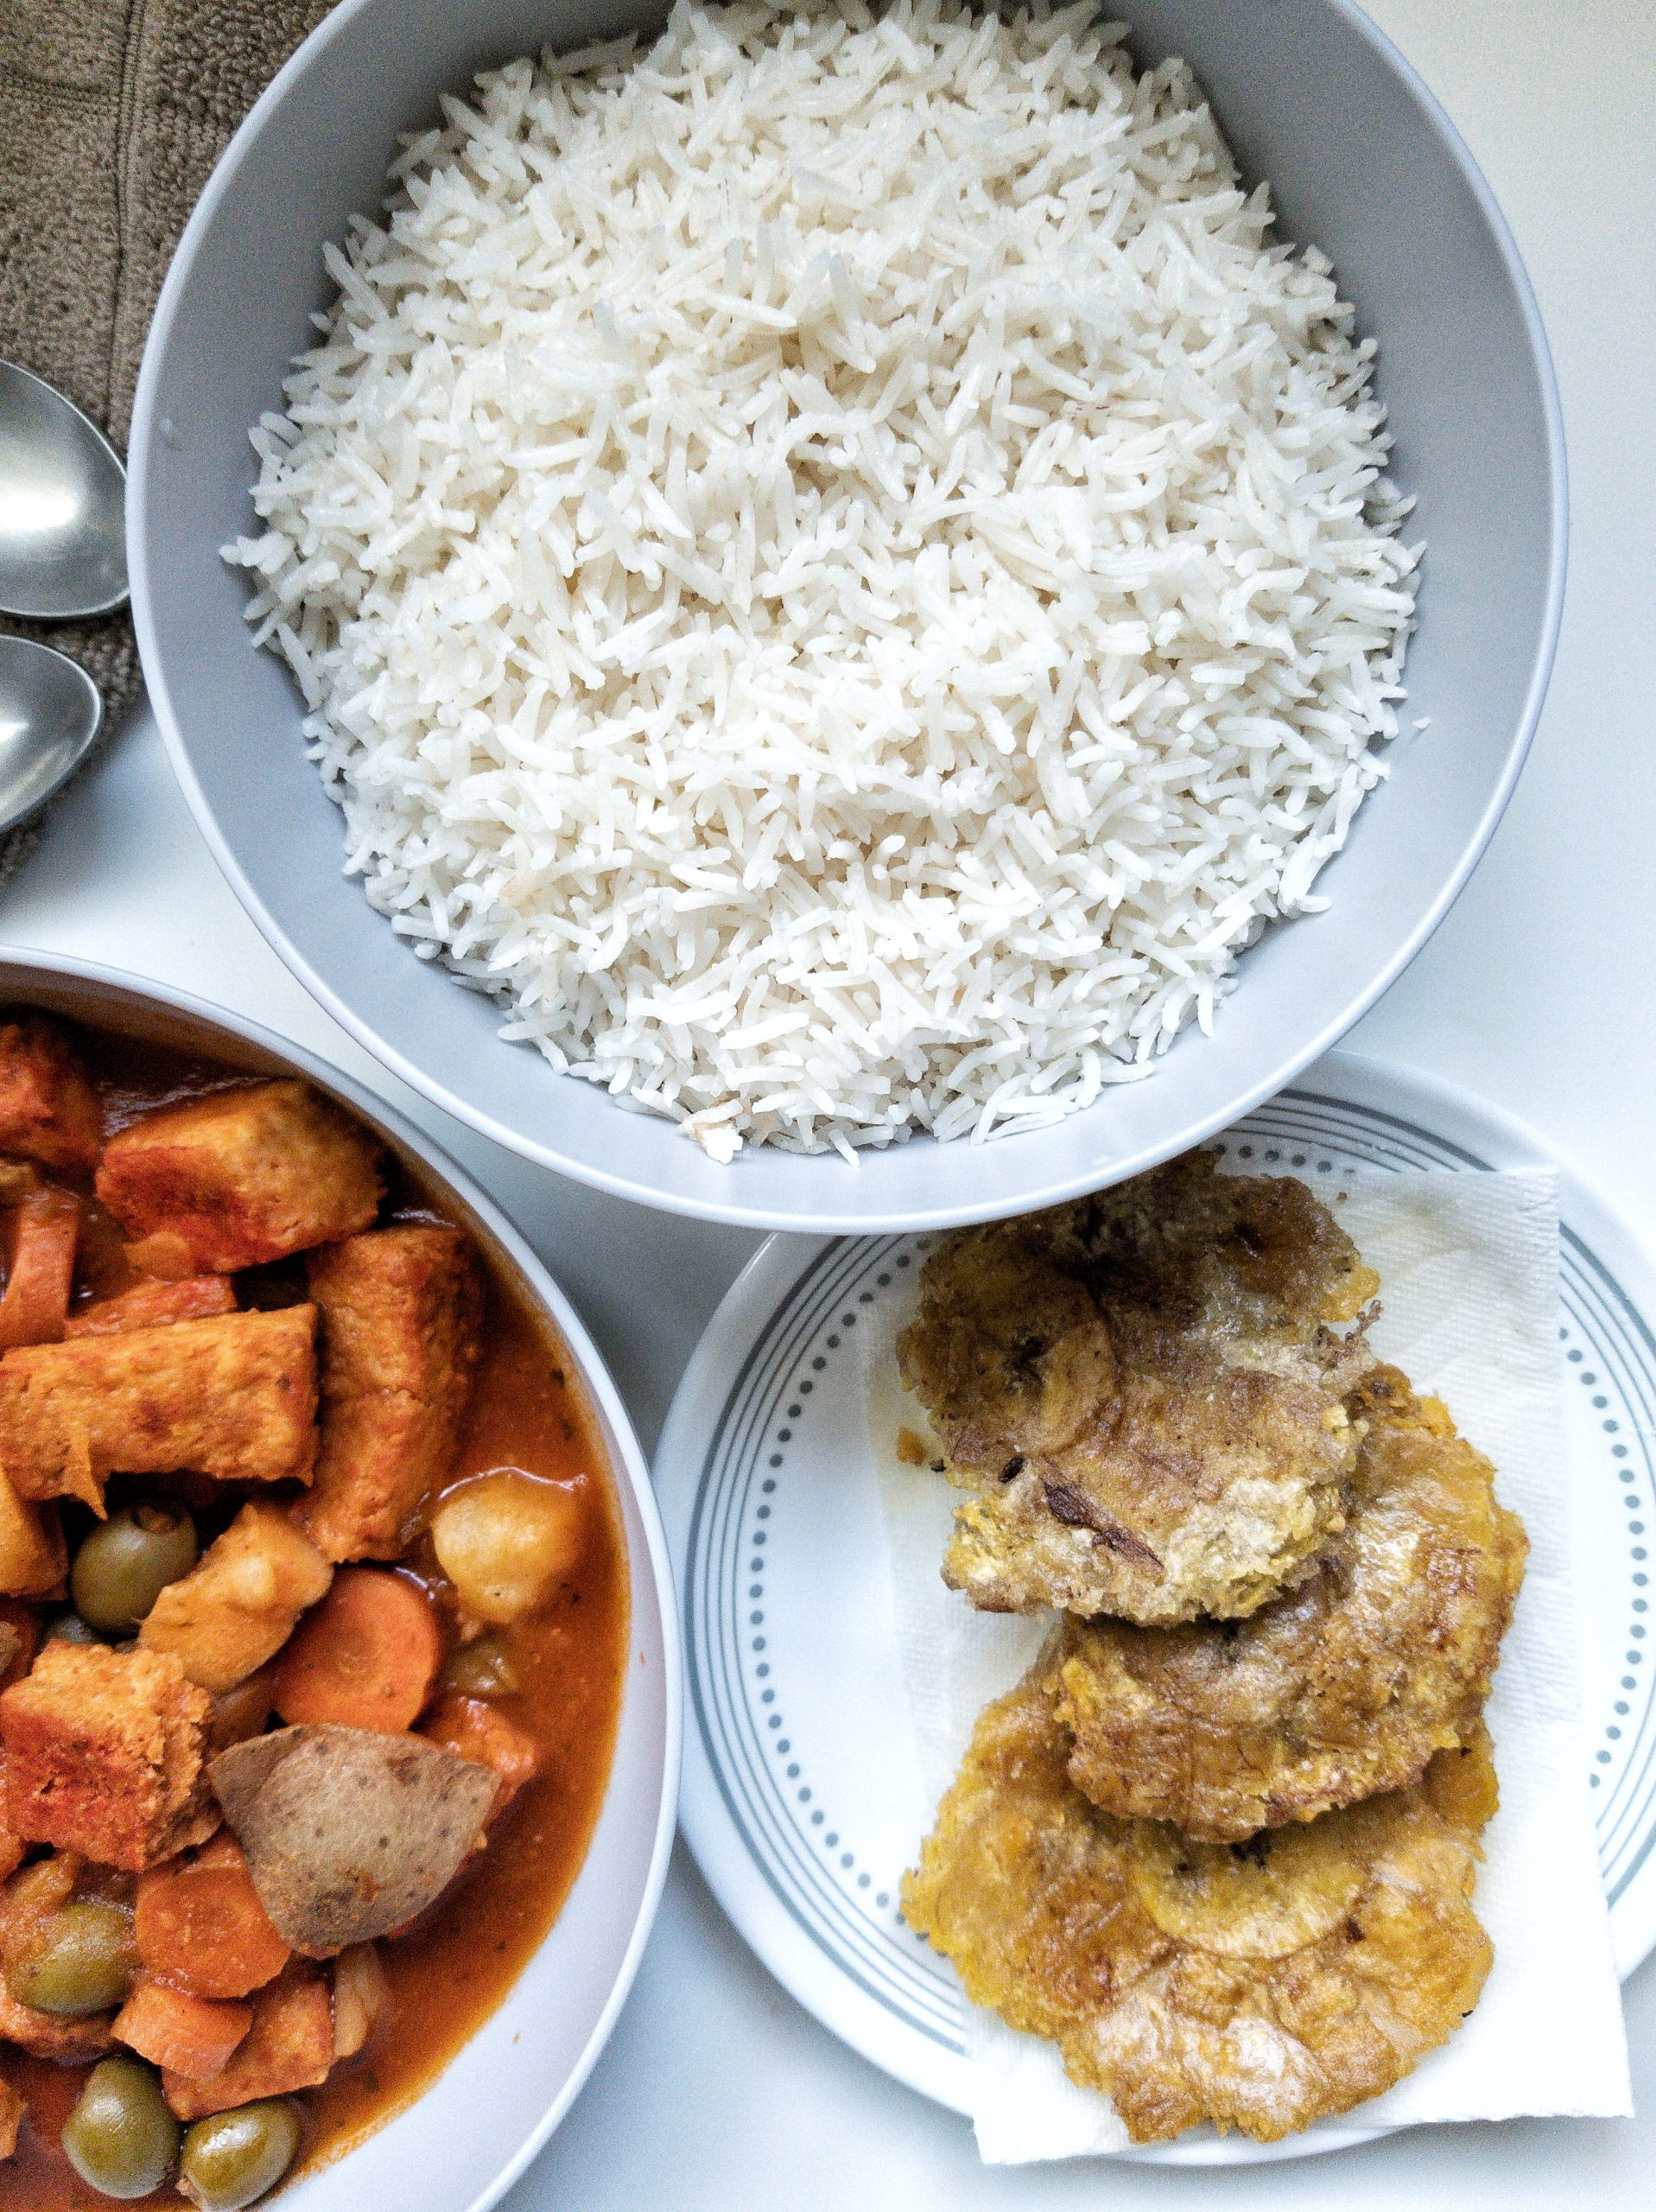 Bowl of white rice and fried plantains (tostones)